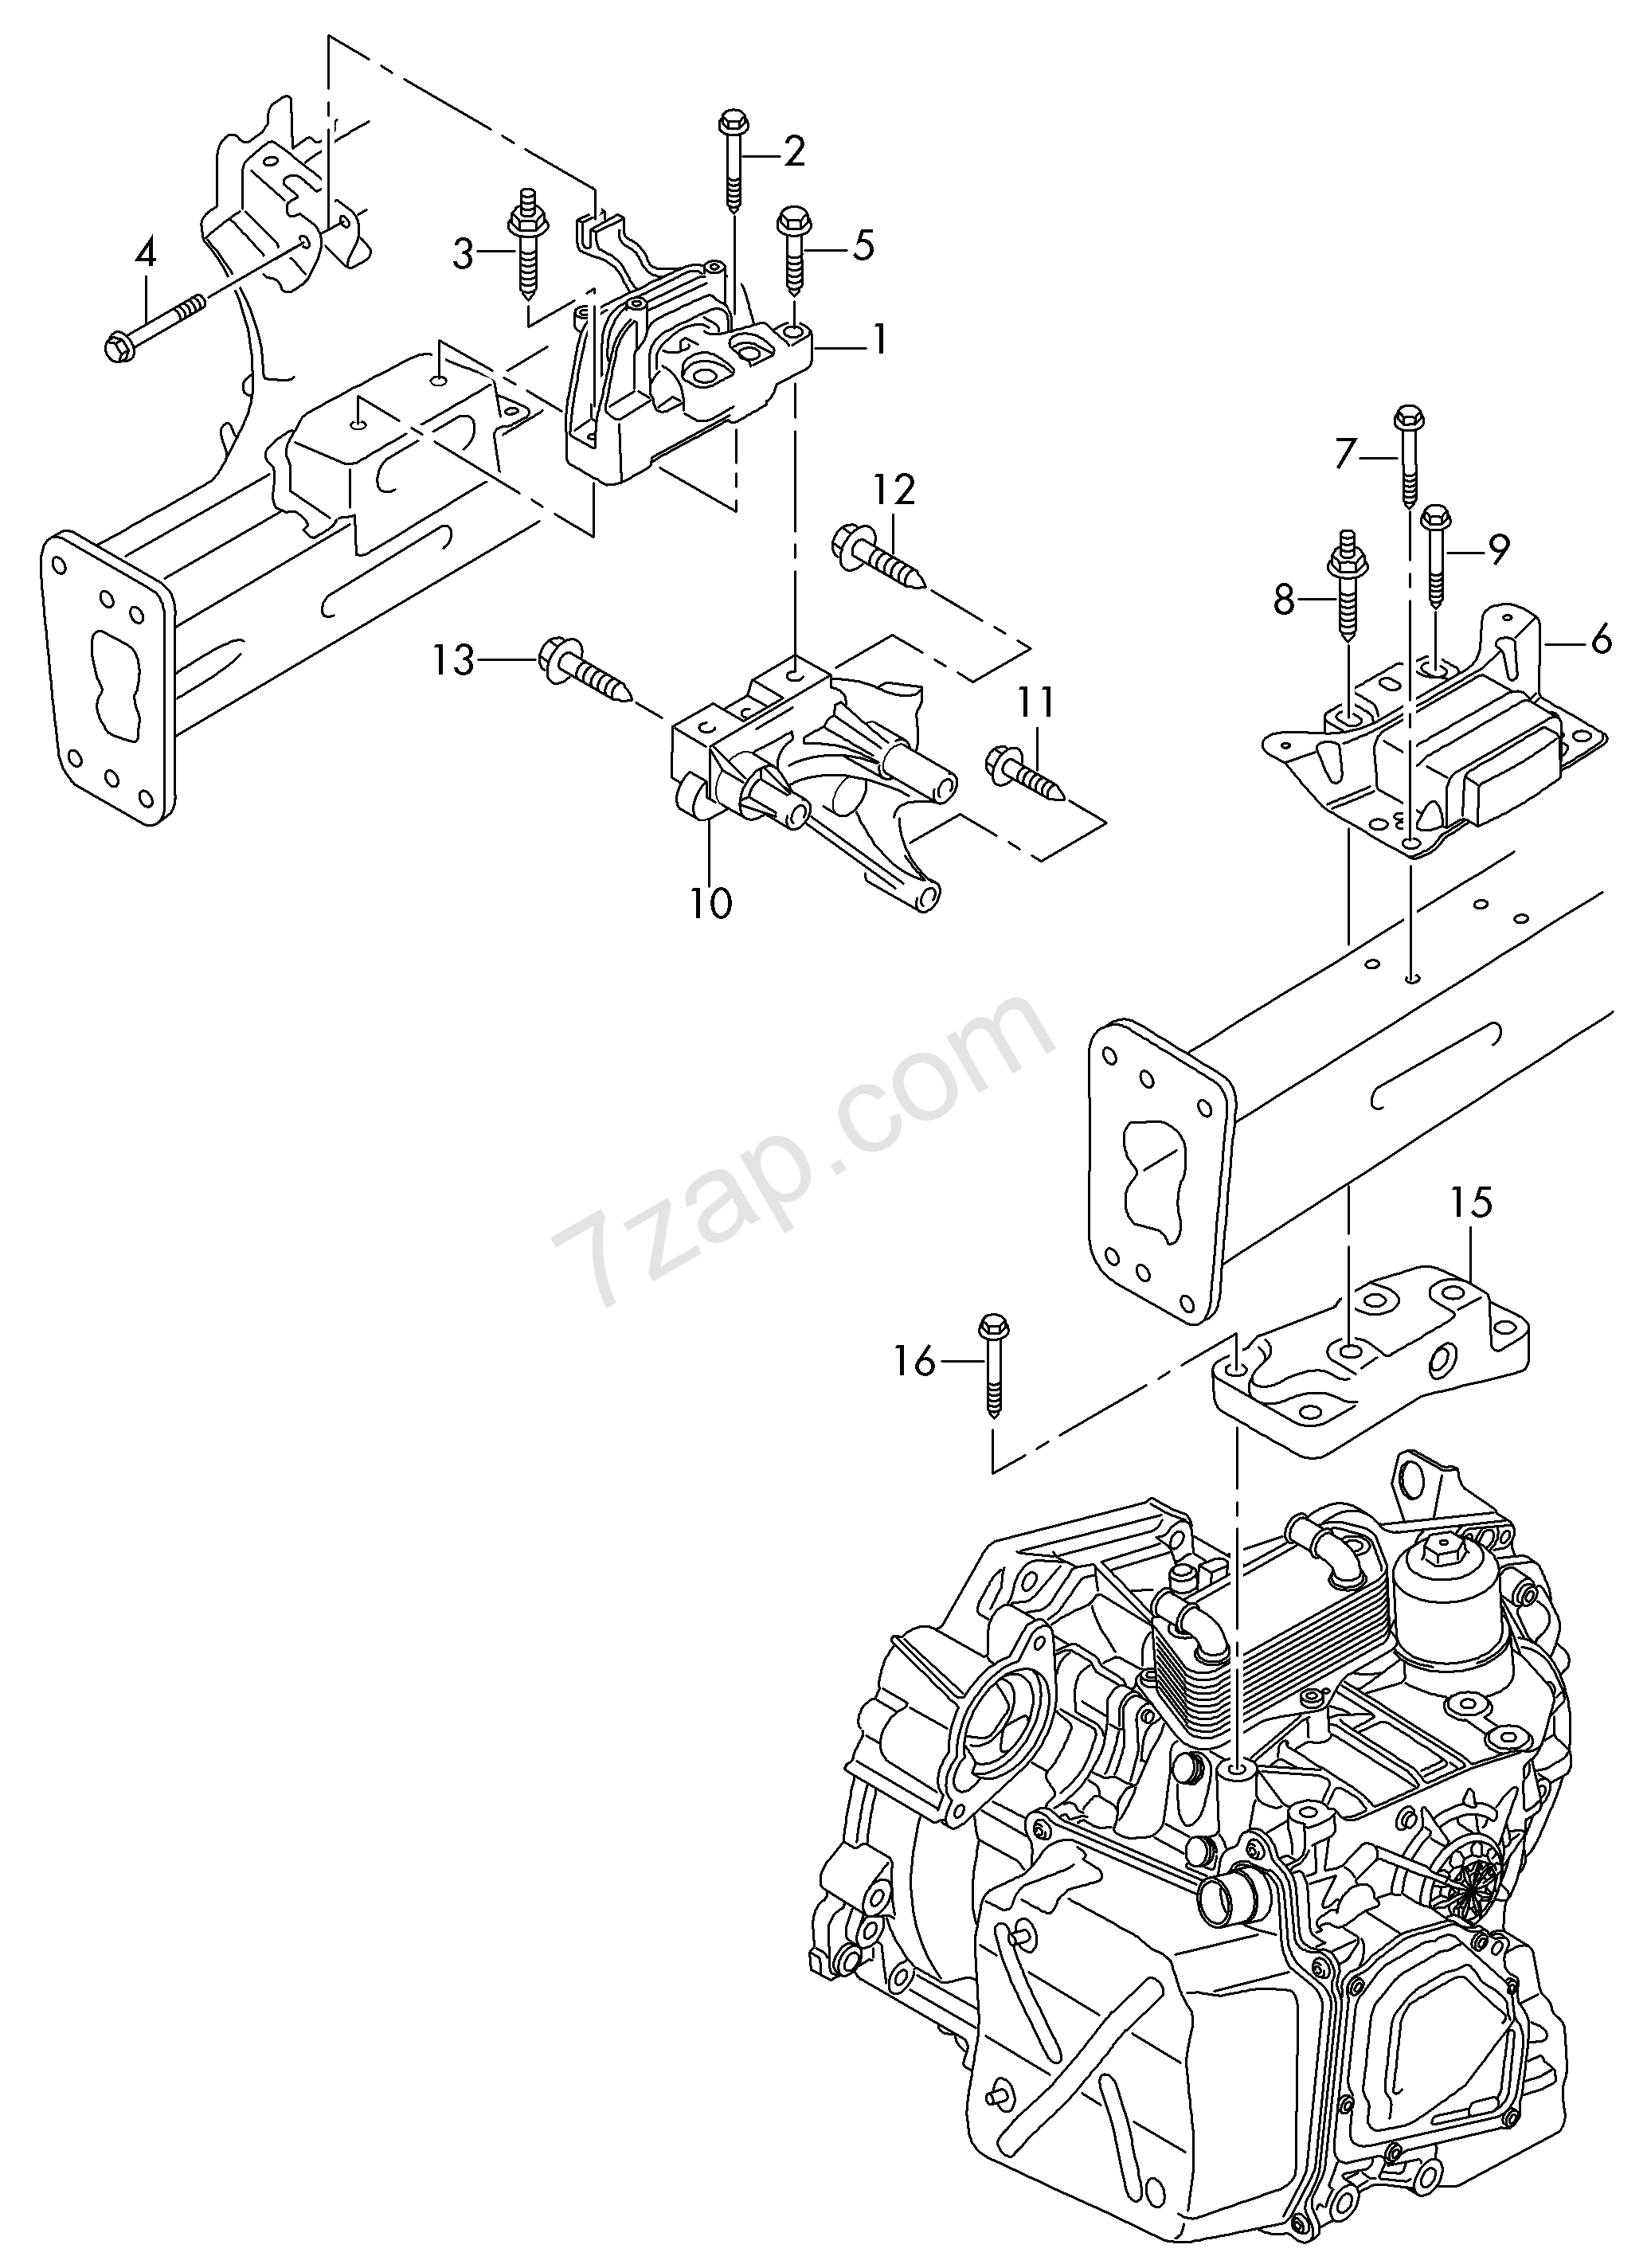 mounting parts for engine and transmission Golf/Variant